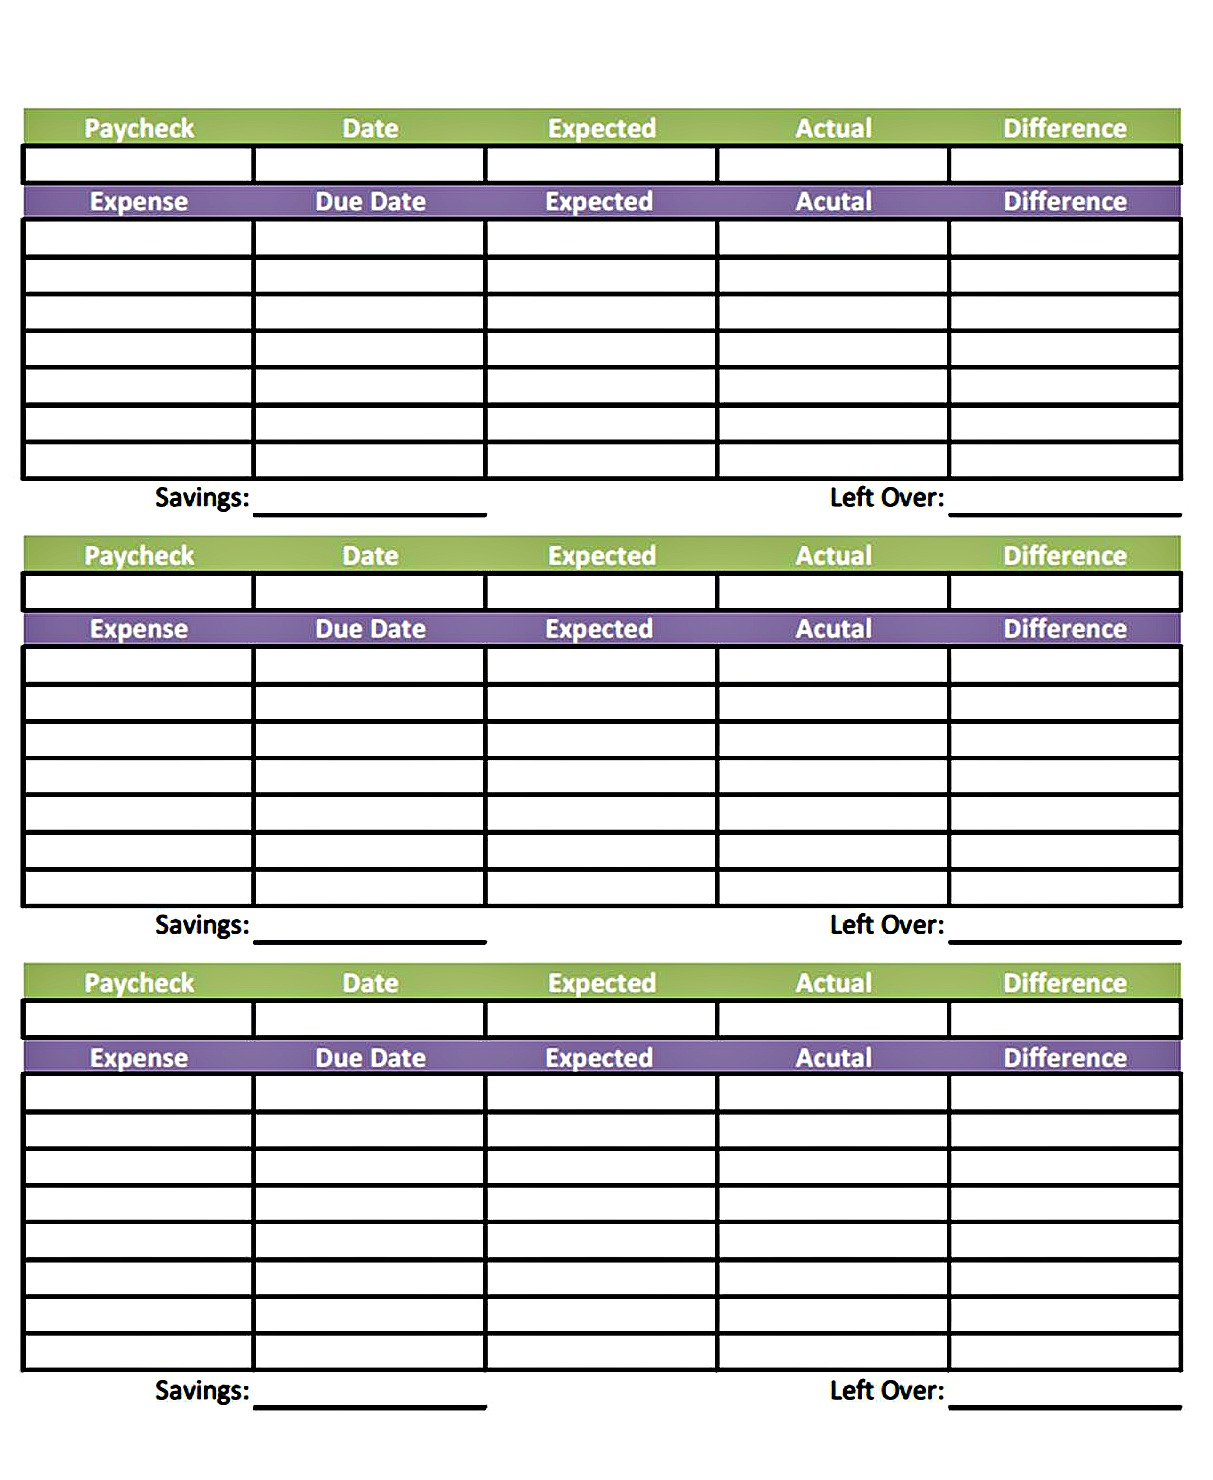 Worksheets Weekly Budget Worksheet Printable bonfires and wine livin paycheck to free printable just right click save each of the pictures or if you want file sent in an editable document so can make your own